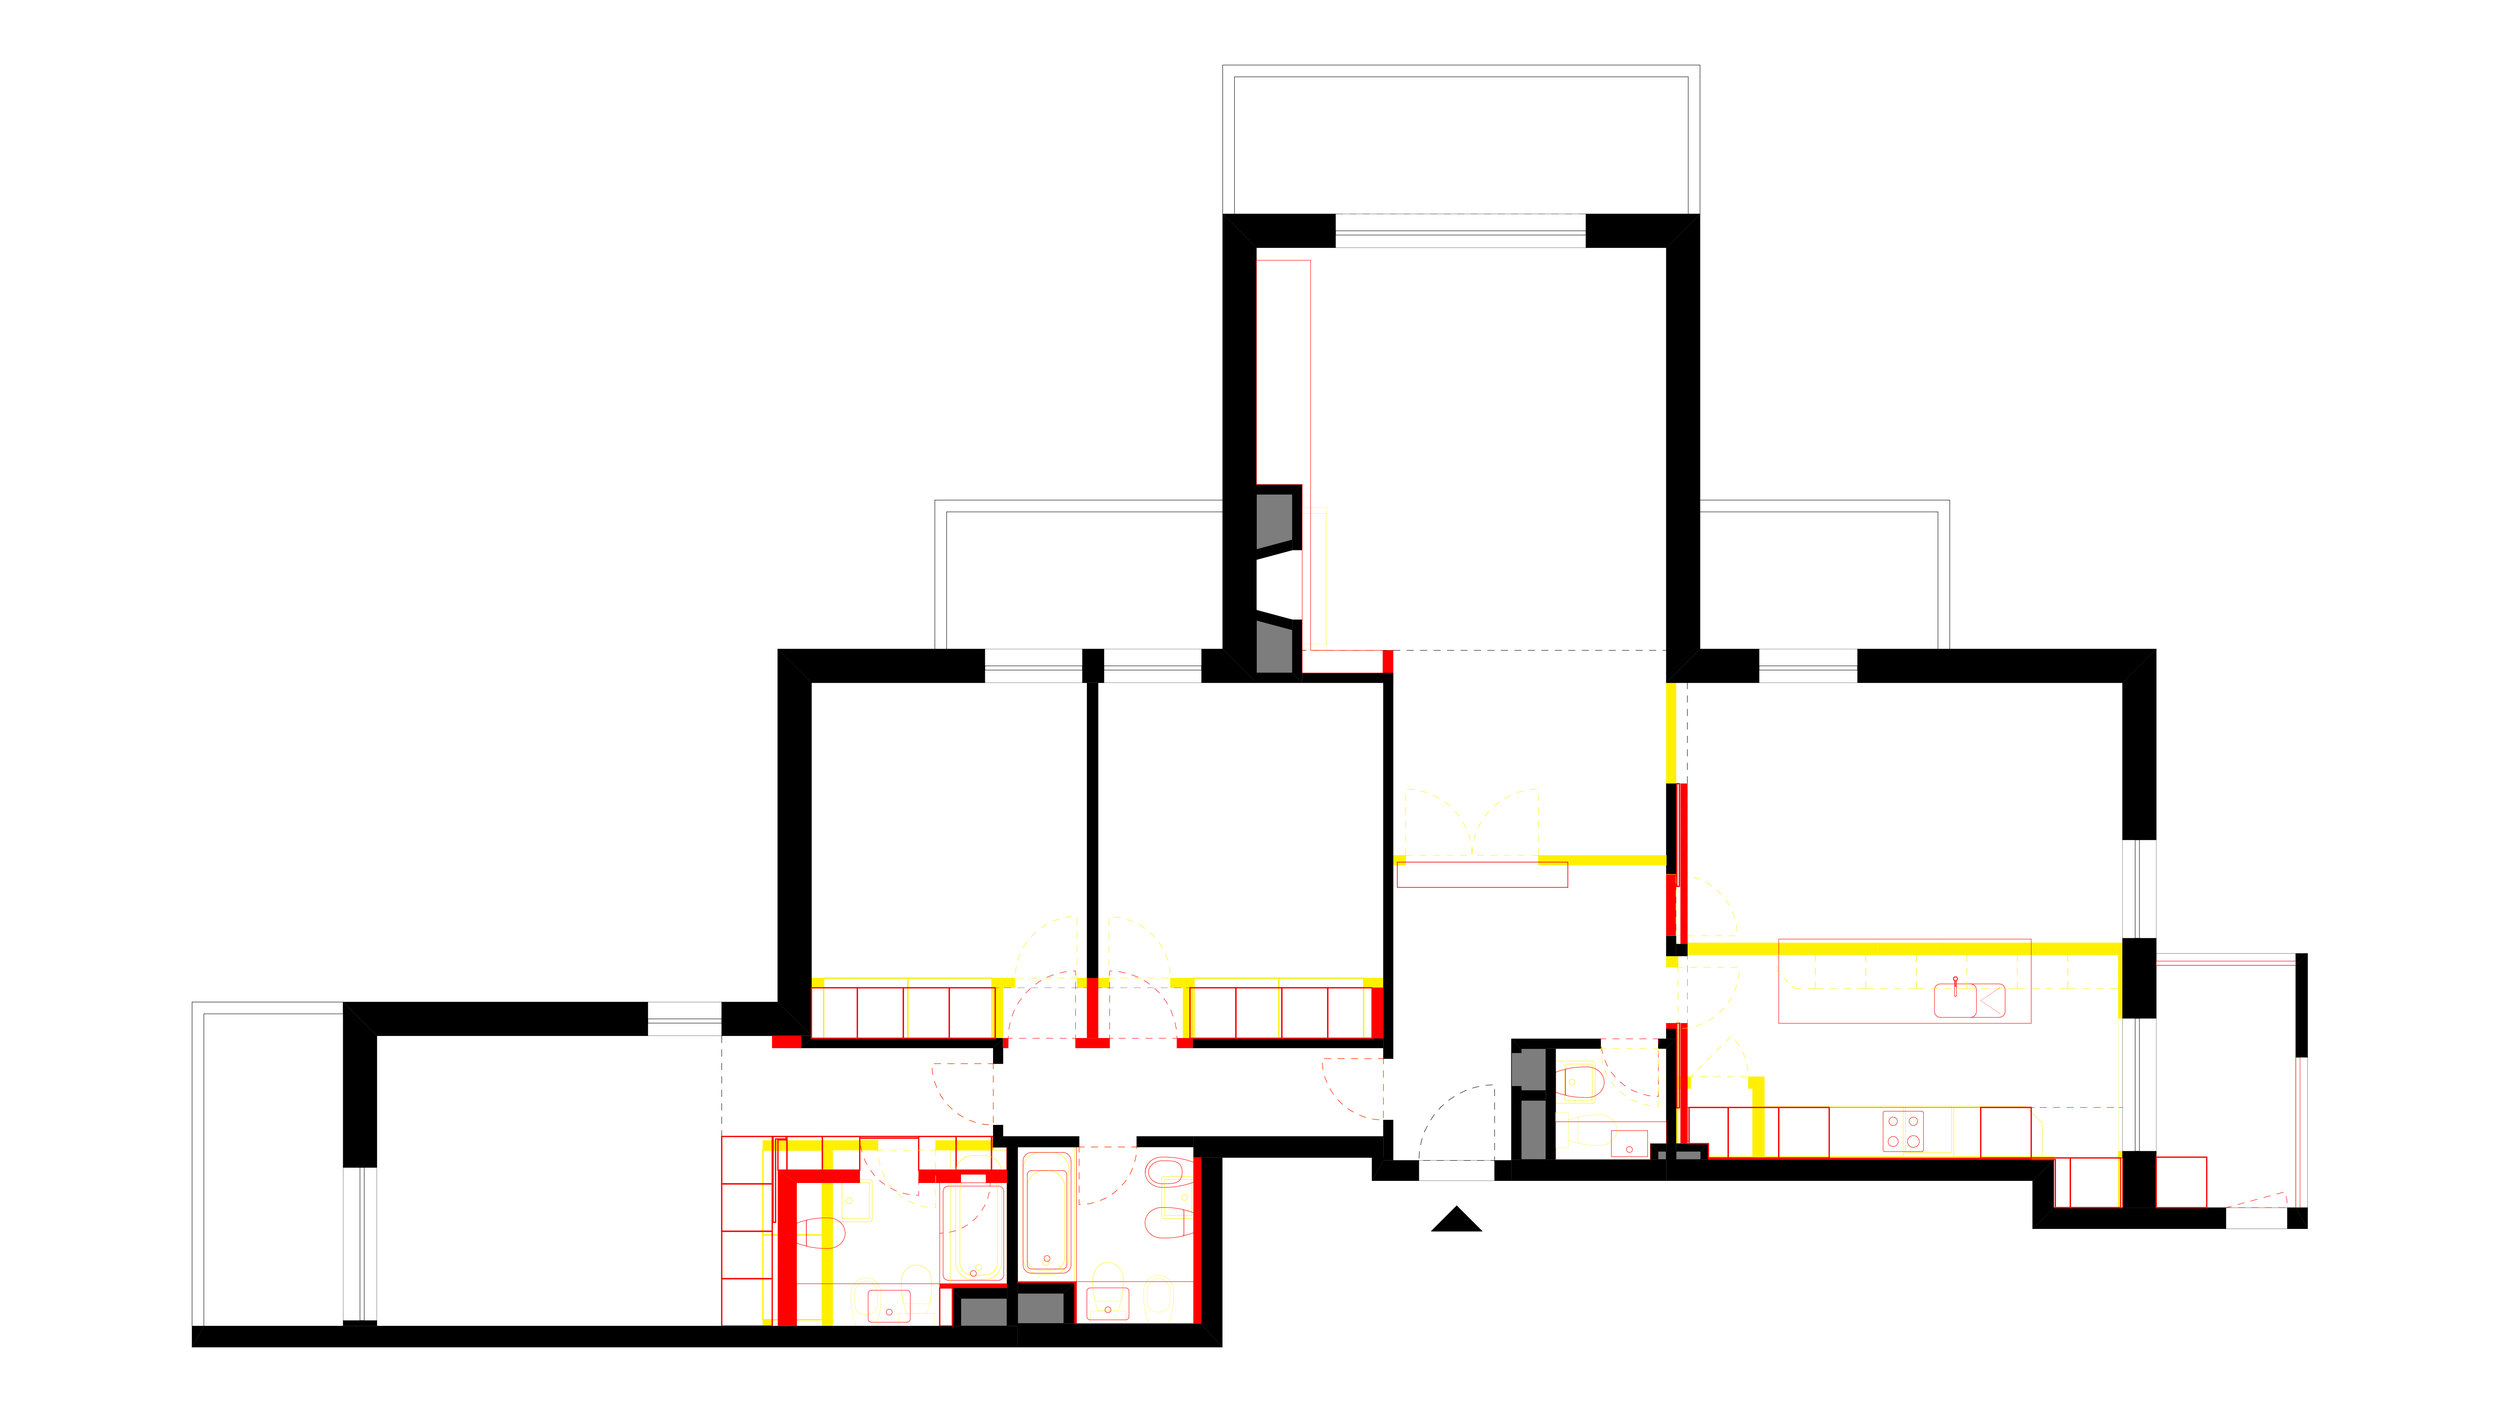 FLOOR PLAN _ Demolition (yellow) and New Construction (red)